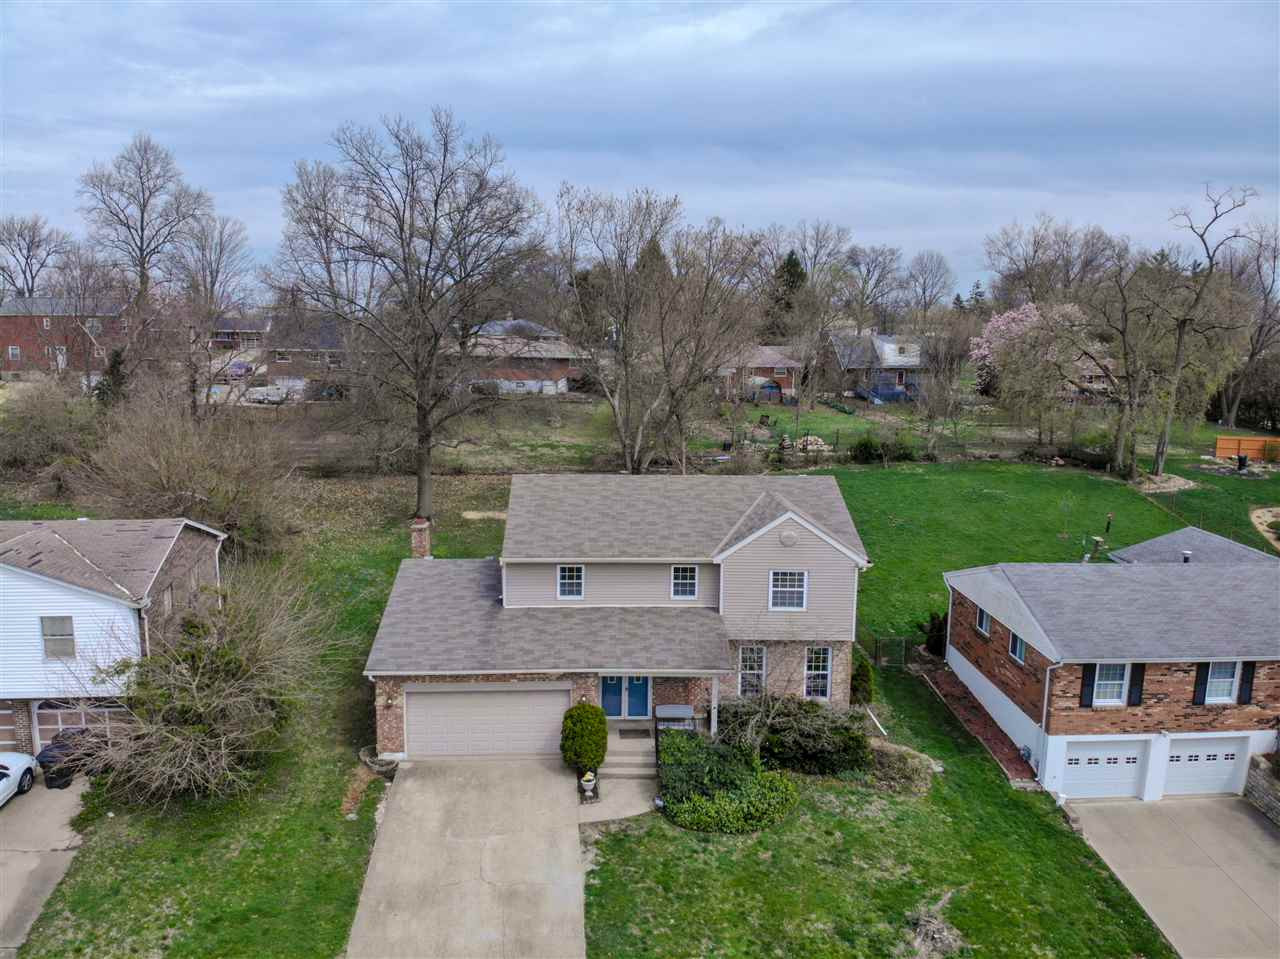 Photo 3 for 840 Rogers Drive Villa Hills, KY 41017